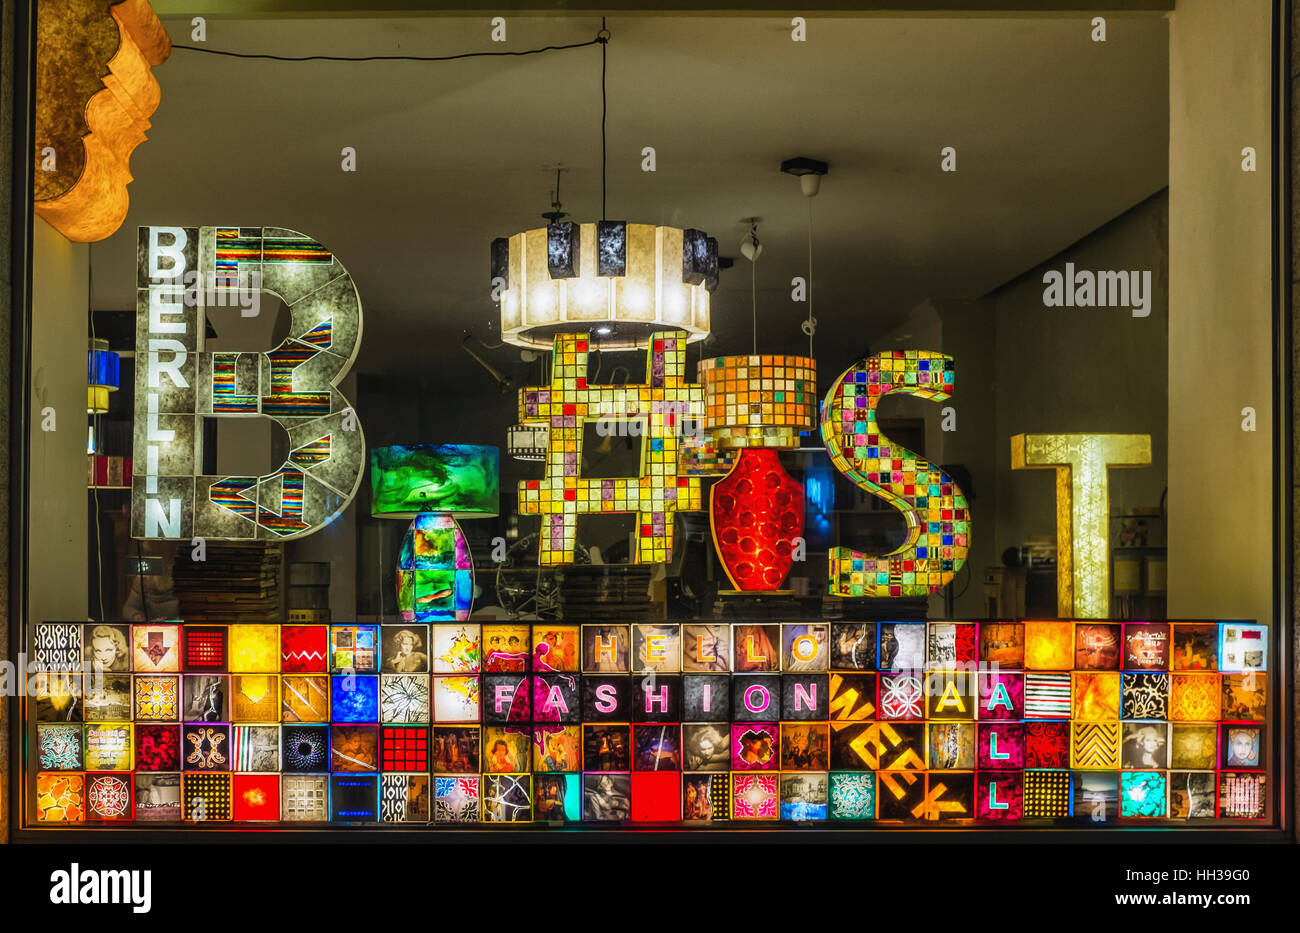 Berlin, Mitte, Germany, 16th January 2017. Berlin Light store welcomes Berlin Fashion Week with colourful display - Stock Image